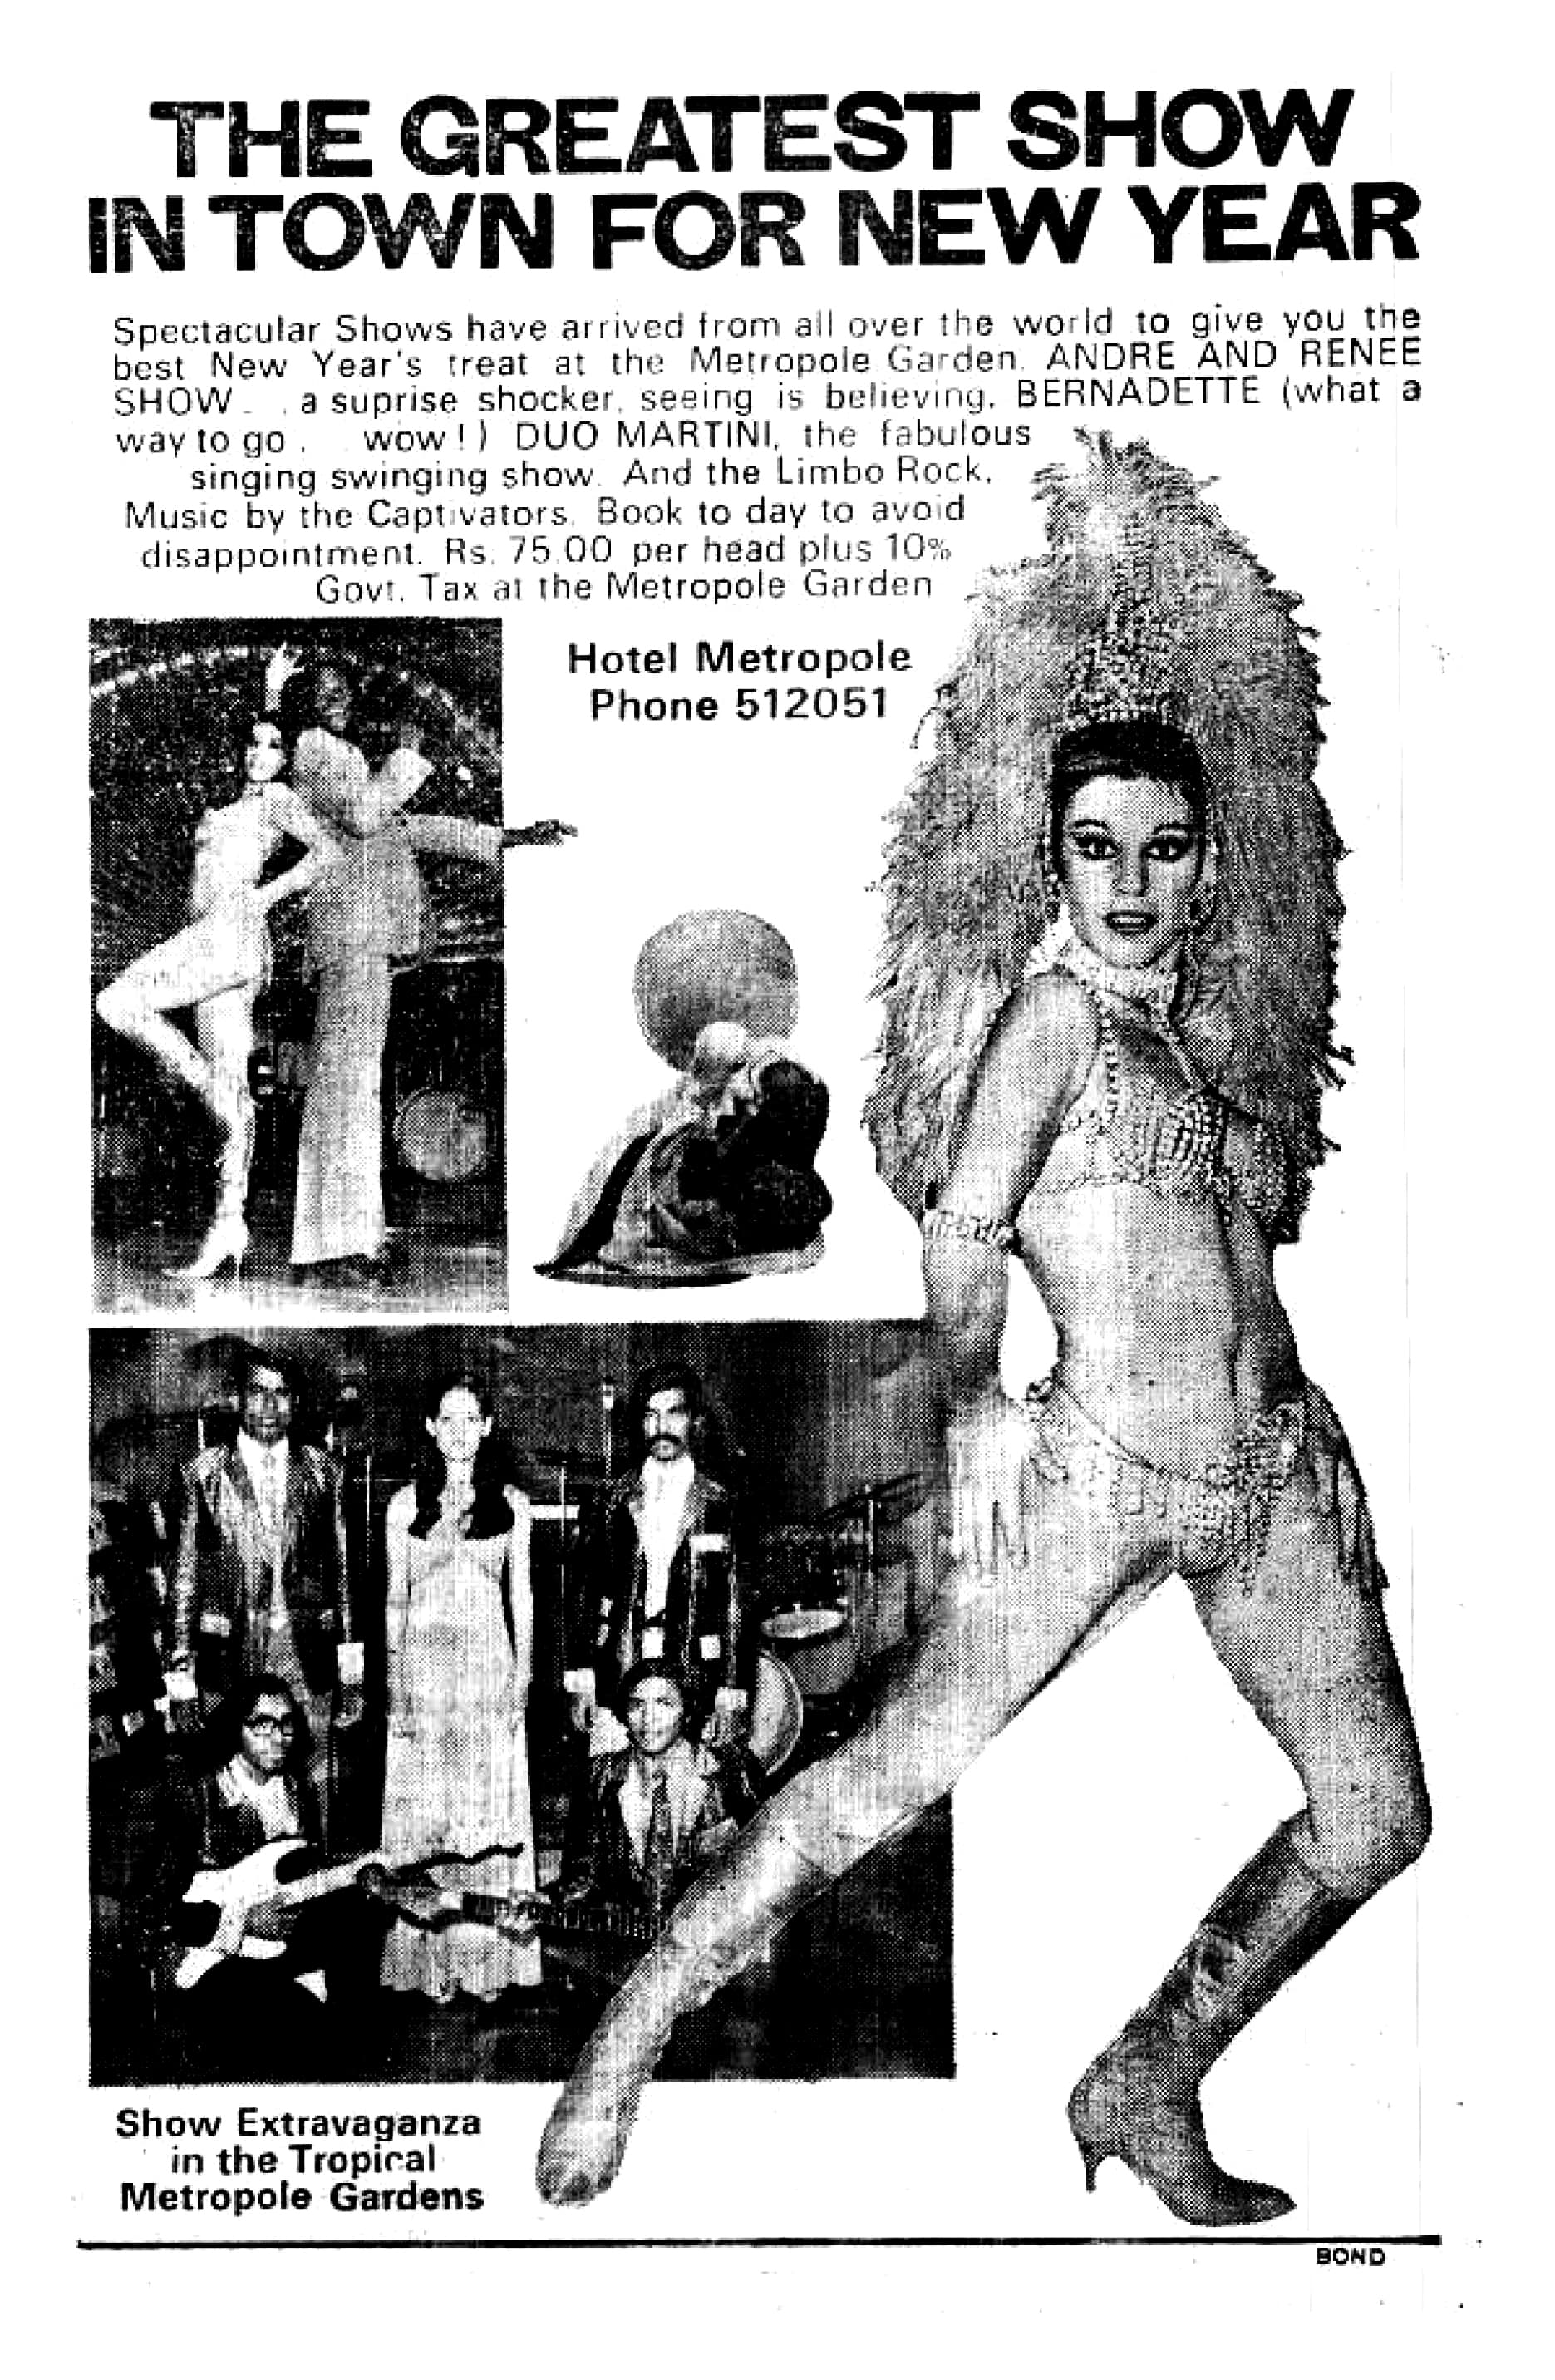 Advertisements for cabaret shows held at the Beach Luxury Hotel, Hotel Metropole and Palace Hotel were regularly published in Dawn in the fifties and sixties. Other hotels well-known for their cabaret shows included the InterContinental Hotel and The Excelsior. The performances went from classy sophistication to downright sleaze. Many of the performers came from Turkey, Lebanon and Russia. They toured various countries with their ensembles, giving nightly performances at pre-booked venues. Panna, featured in the above ad, was a Pakistani film star and dancer. She was the star attraction at Le Gourmet, which was possibly Karachi's first nightclub and was located on the ground floor of the Palace Hotel.